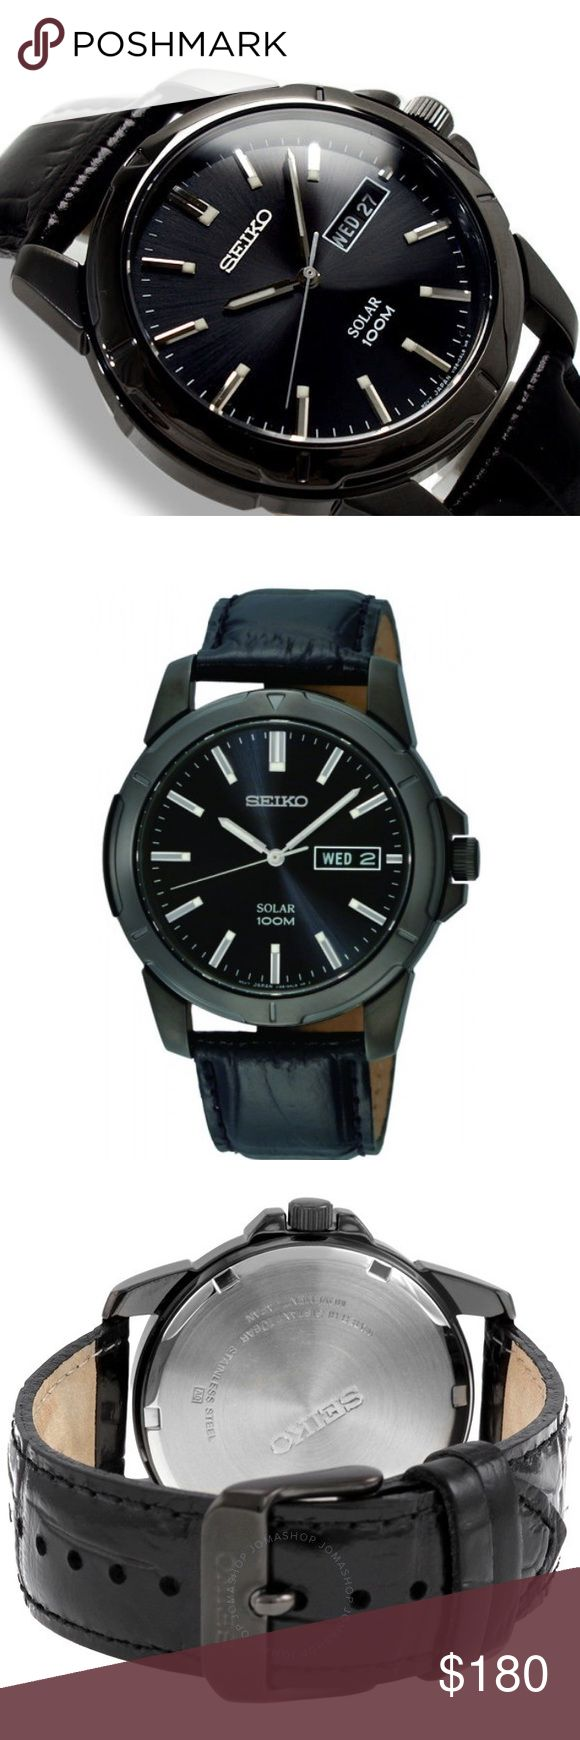 Seiko Men's Solar Black Dial Watch This Seiko Men's Solar Black Dial Watch is a cutting-edge timepiece with a masculine appeal. Featuring a black analog dial & a black calfskin band. For those who prefer little fanfare, this solar watch from Seiko Men's exudes understated appeal with its numberless black dial & croco-embossed leather strap. Japanese quartz movement with analog display. Protective Hardlex crystal dial window. Features include no battery required, day/date. Water resistant to…